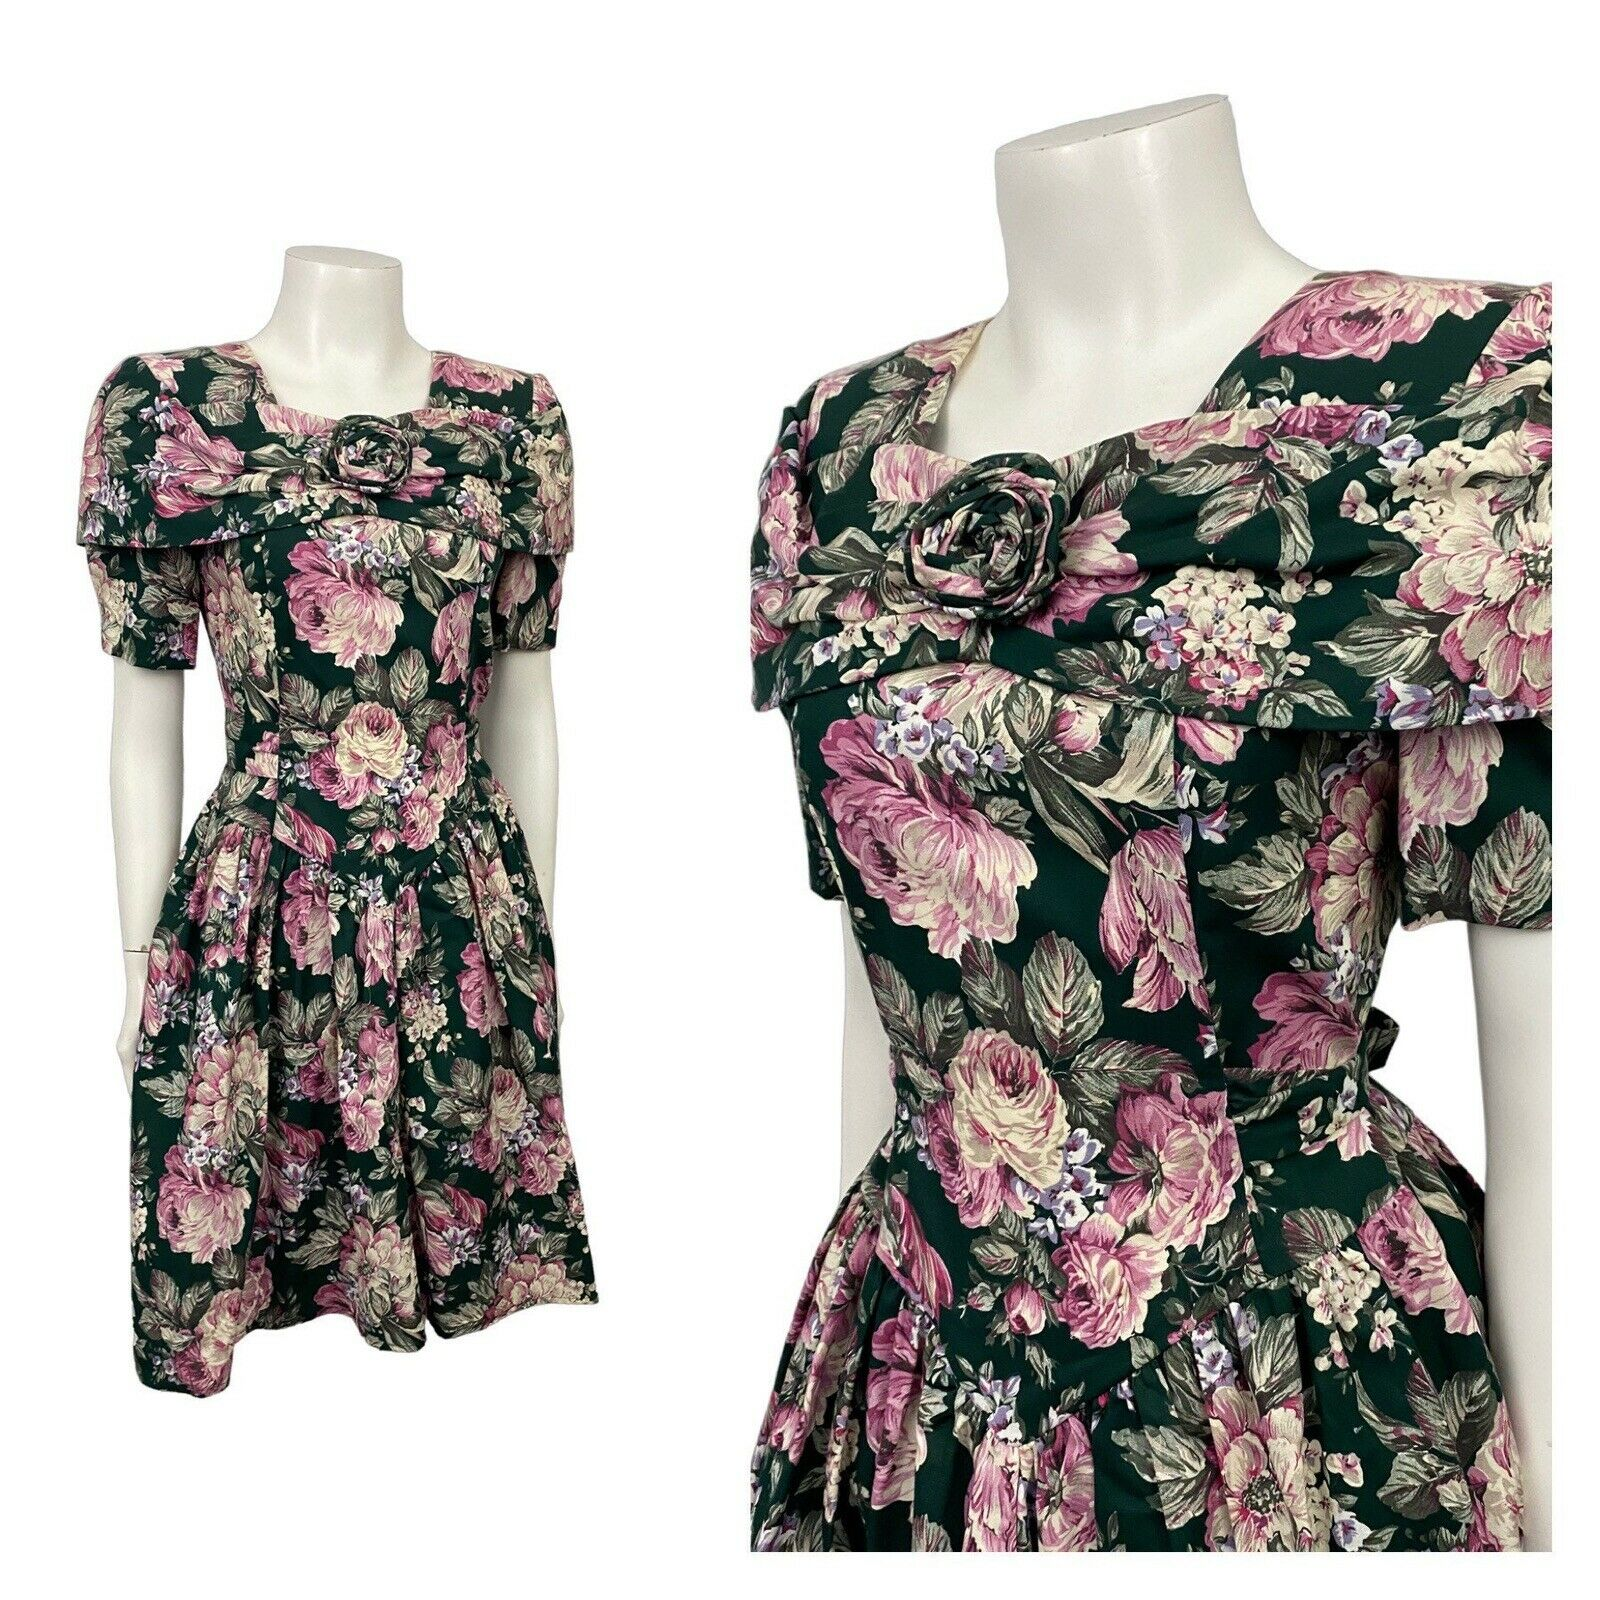 1980s Floral Dress / 80s Tie Belted Party Dress Sweetheart Neckline / Small